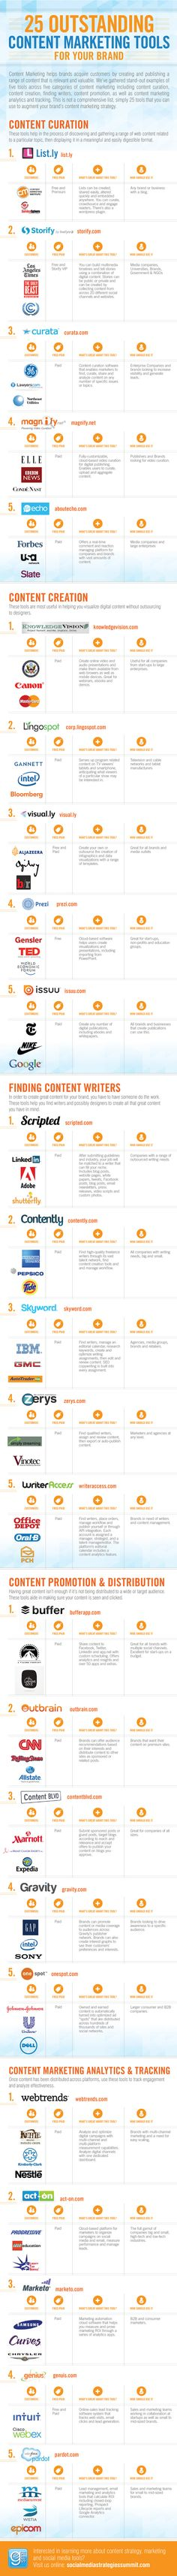 Top Tools to Elevate Your Content Marketing Strategy #contentmarketing #contentcuration